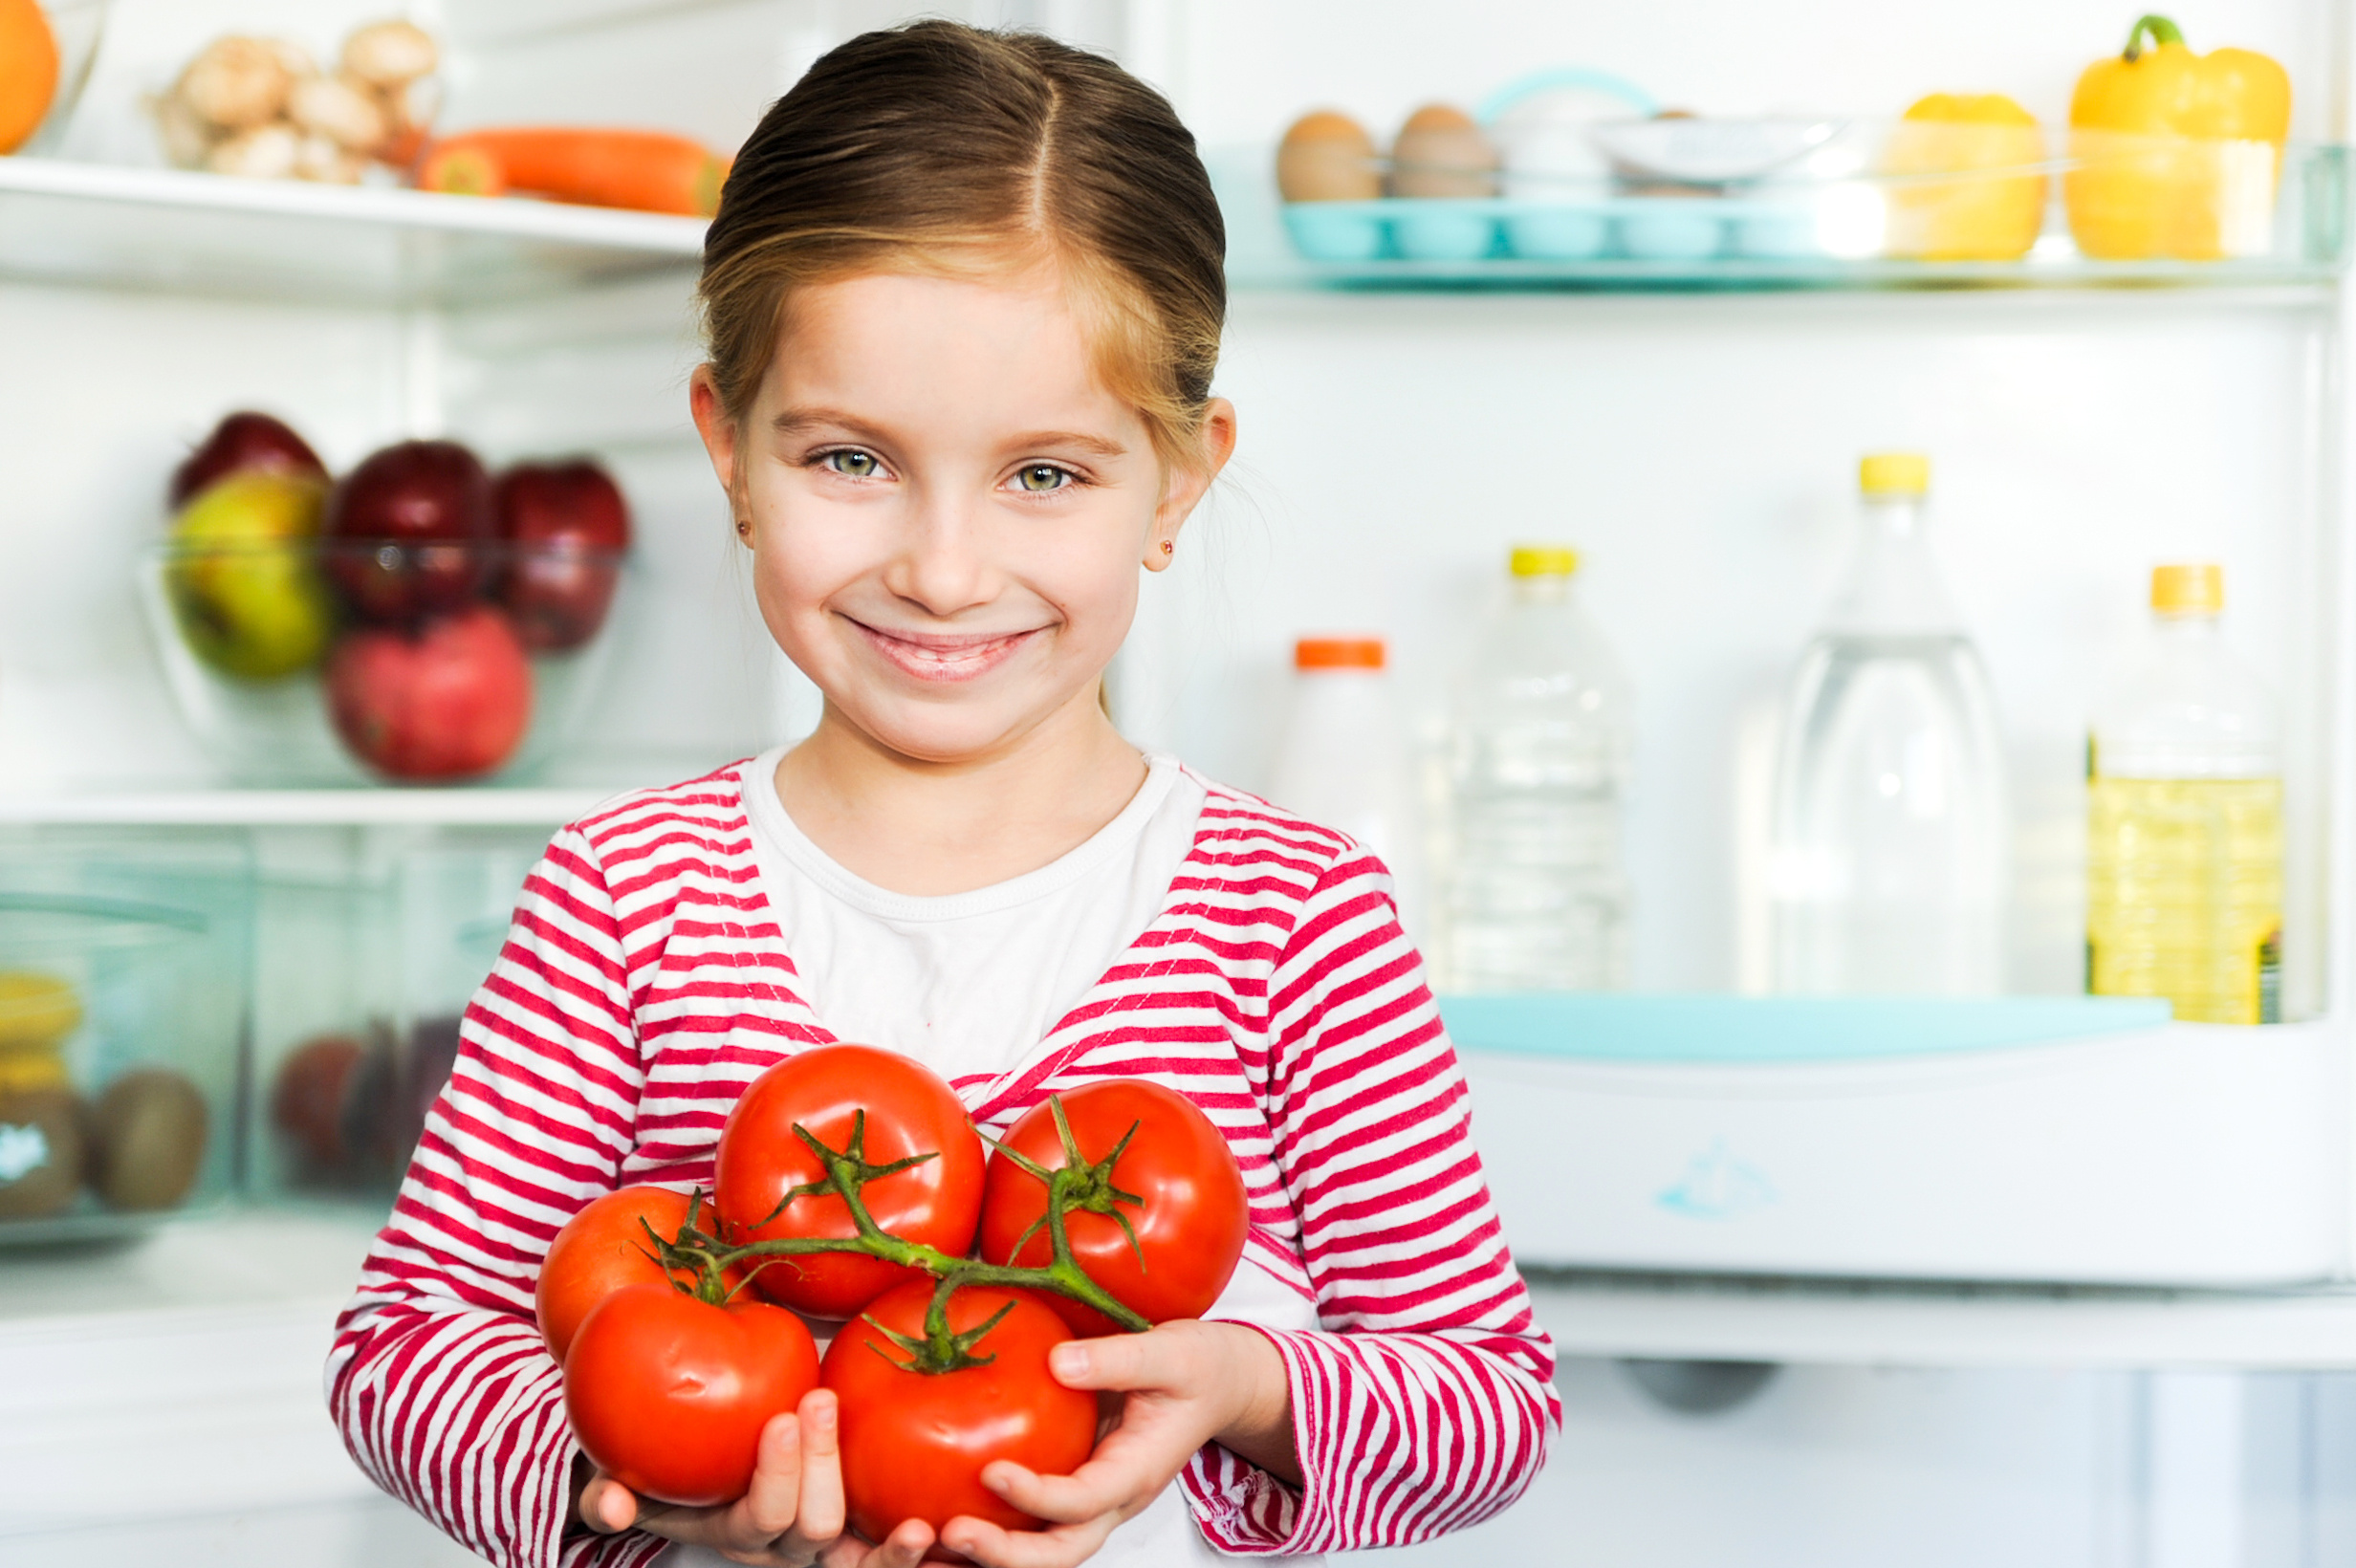 child holding tomatoes